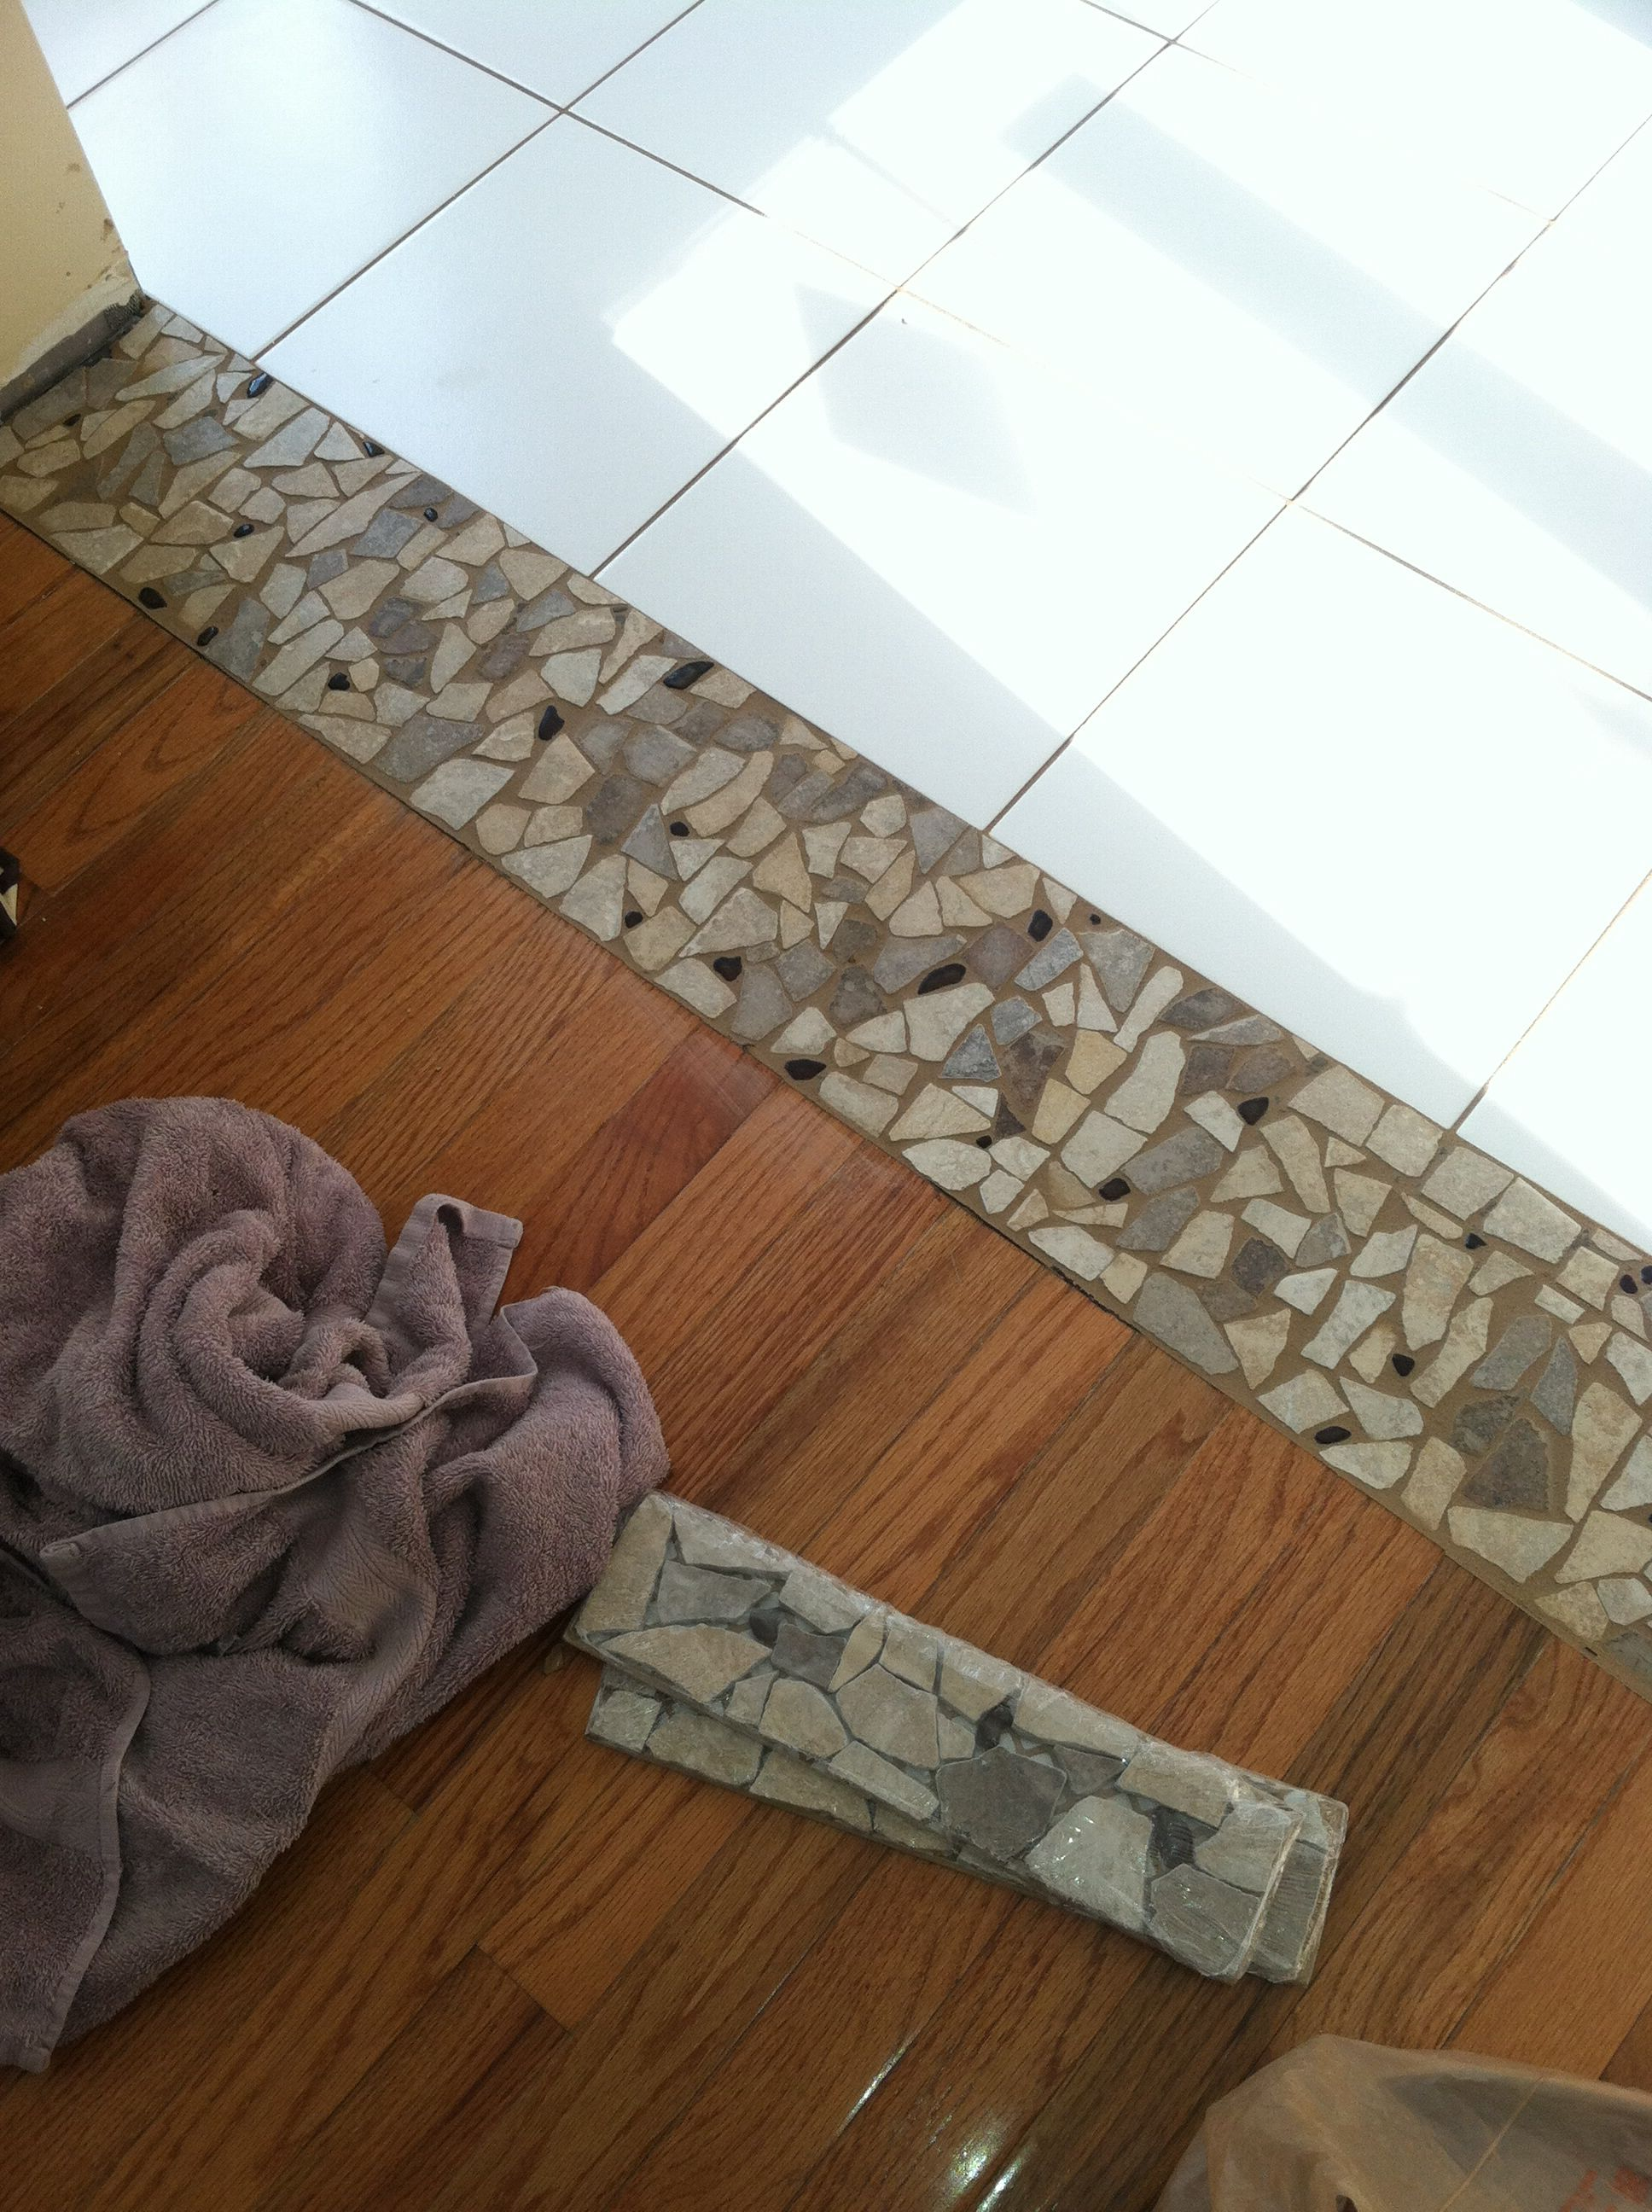 Stone Threshold Between Tile And Wood Transition Flooring Tile To Wood Transition Wood Tile Floors